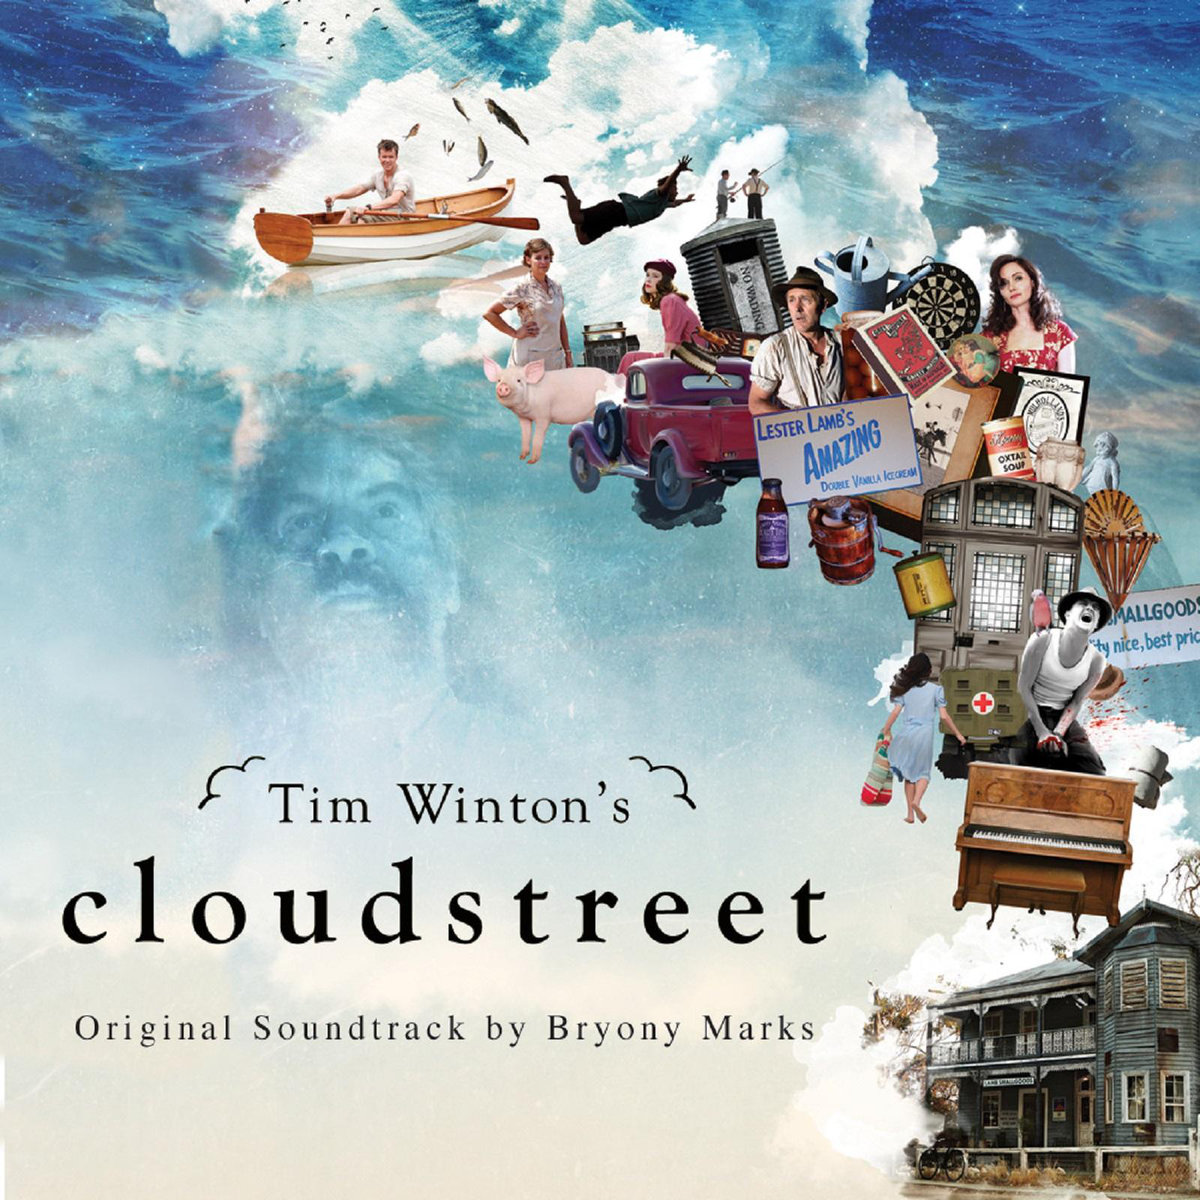 cloud street essay I need someone to help me with the application of rhetoric in regulating wall street essay help get in touch with us to get help with the application of rhetoric.